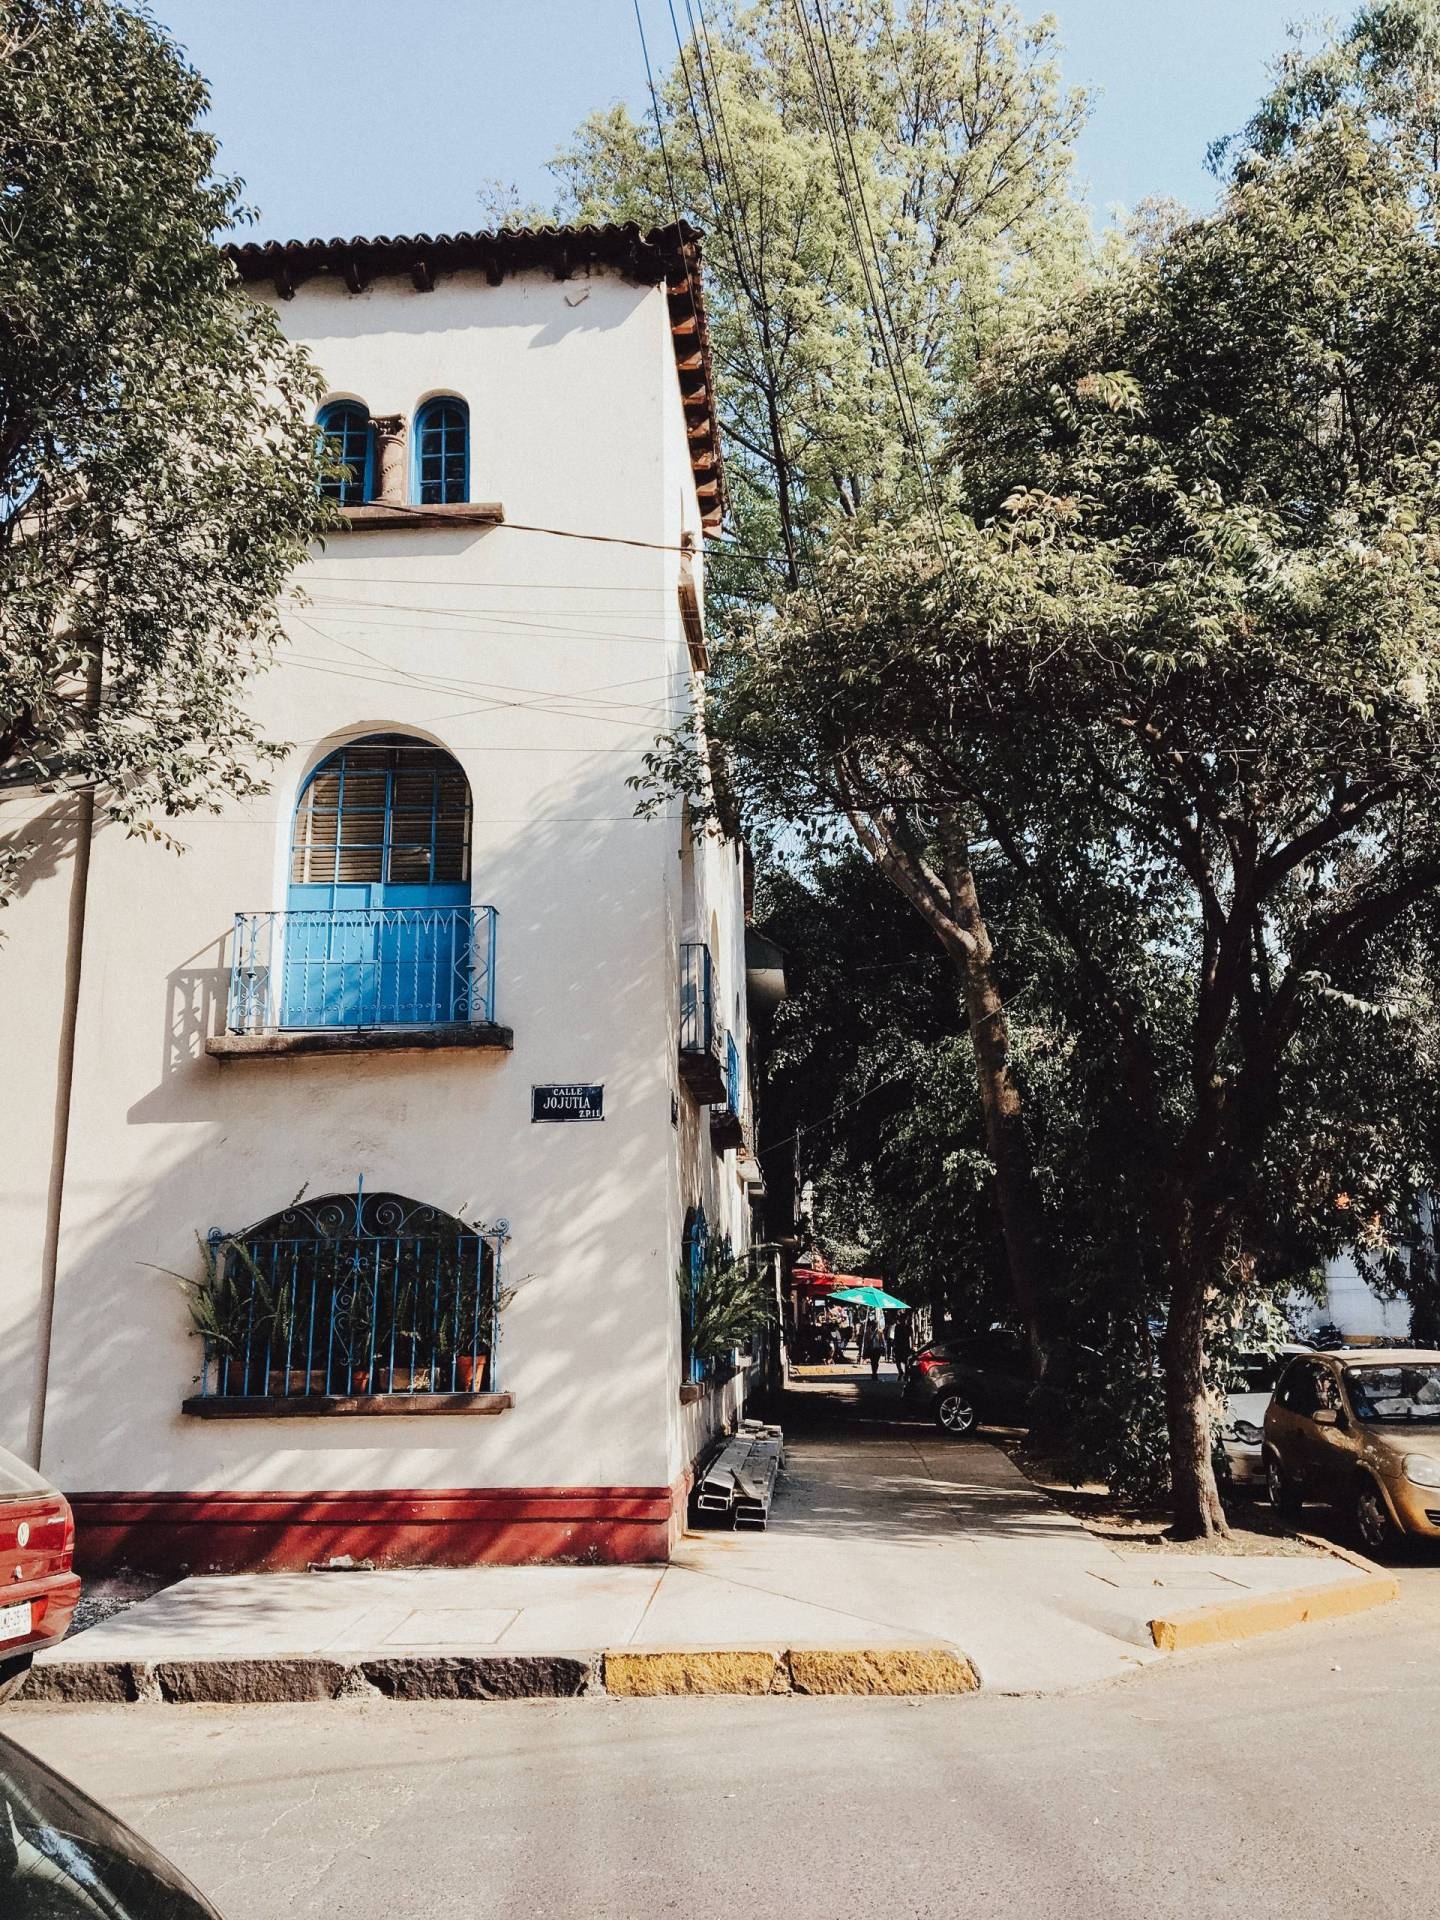 Exploring La Condesa in Mexico City